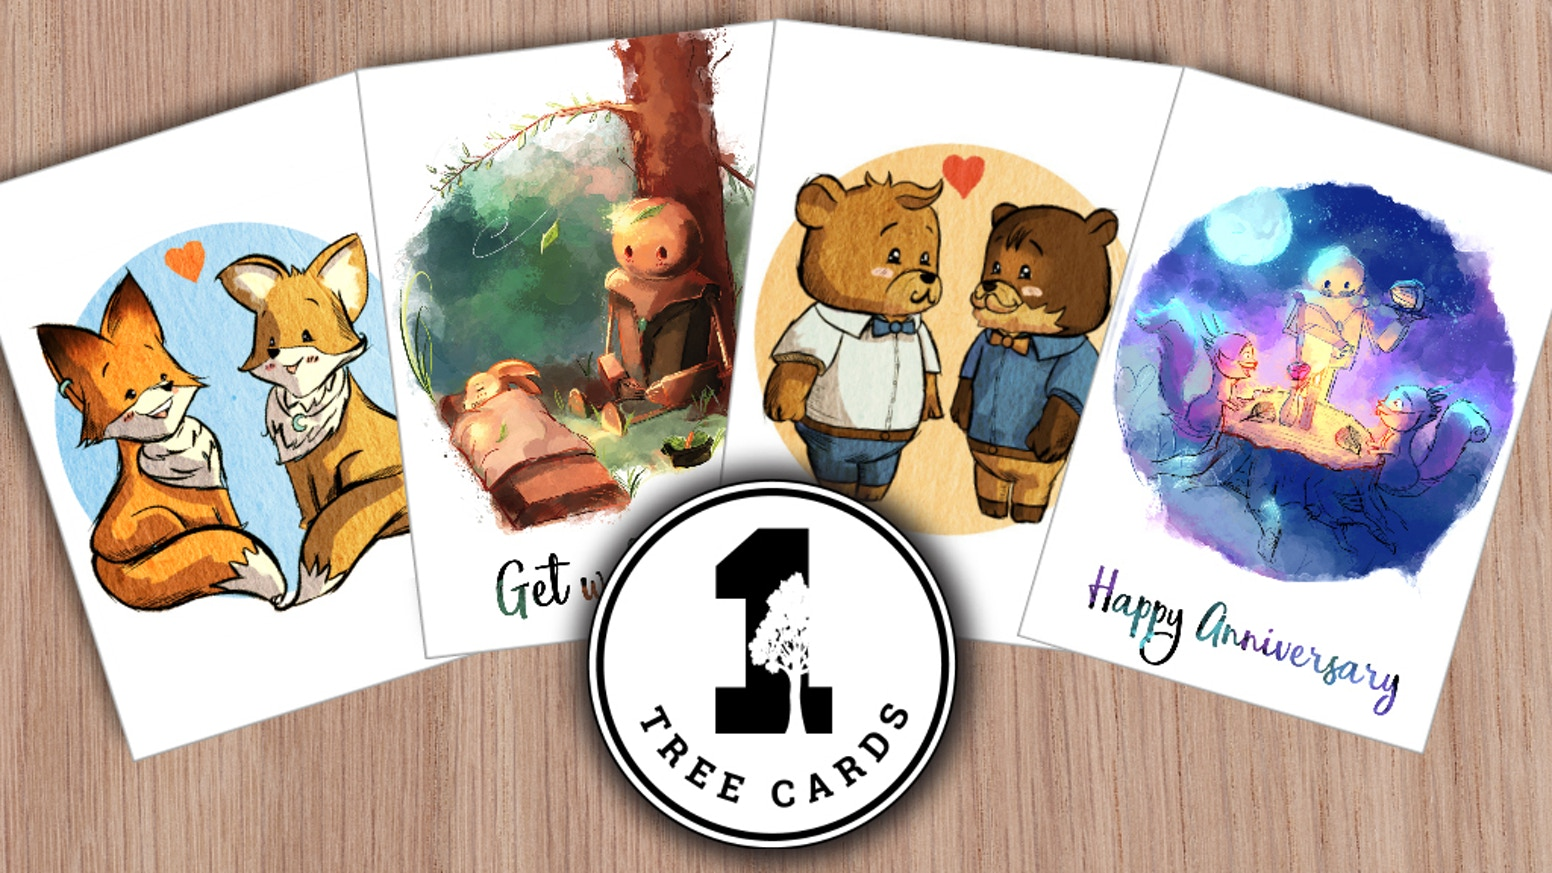 1 Tree Cards Eco Greeting Cards That Plant Trees By 1 Tree Cards